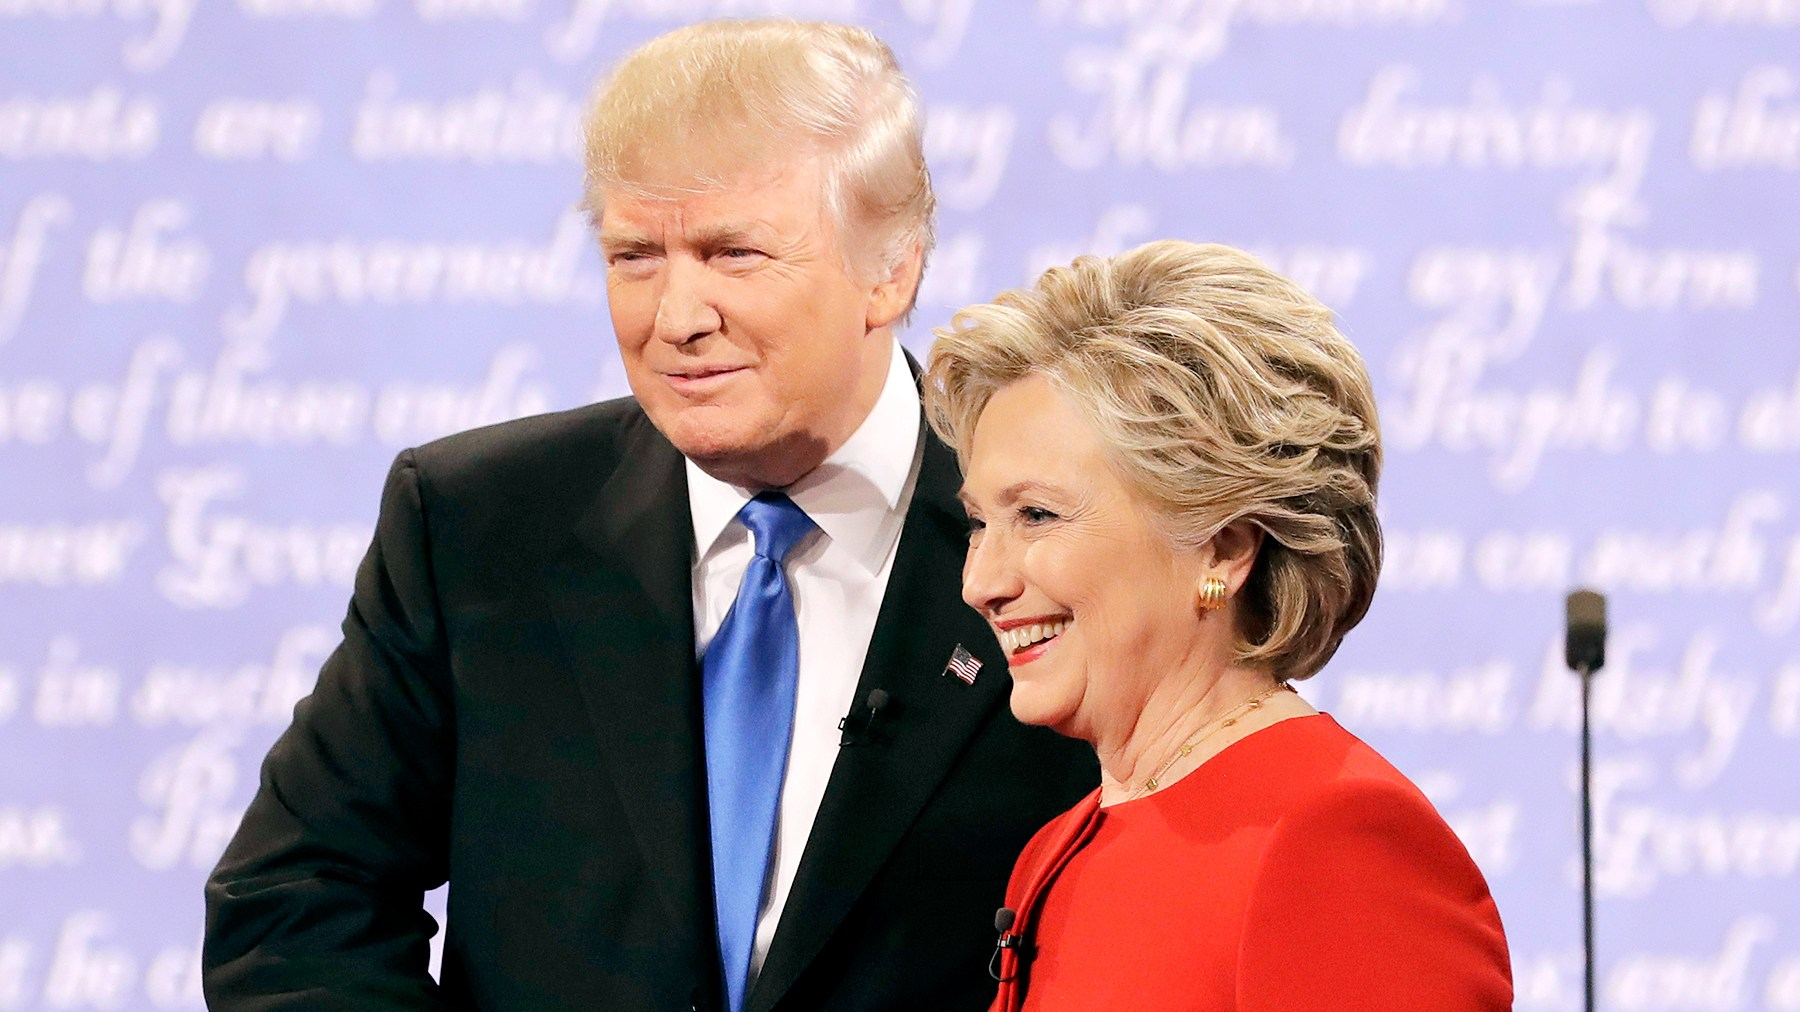 Republican presidential nominee Donald Trump shakes hands with Democratic presidential nominee Hillary Clinton during the presidential debate at Hofstra University in Hempstead, N.Y., Monday, Sept. 26, 2016.